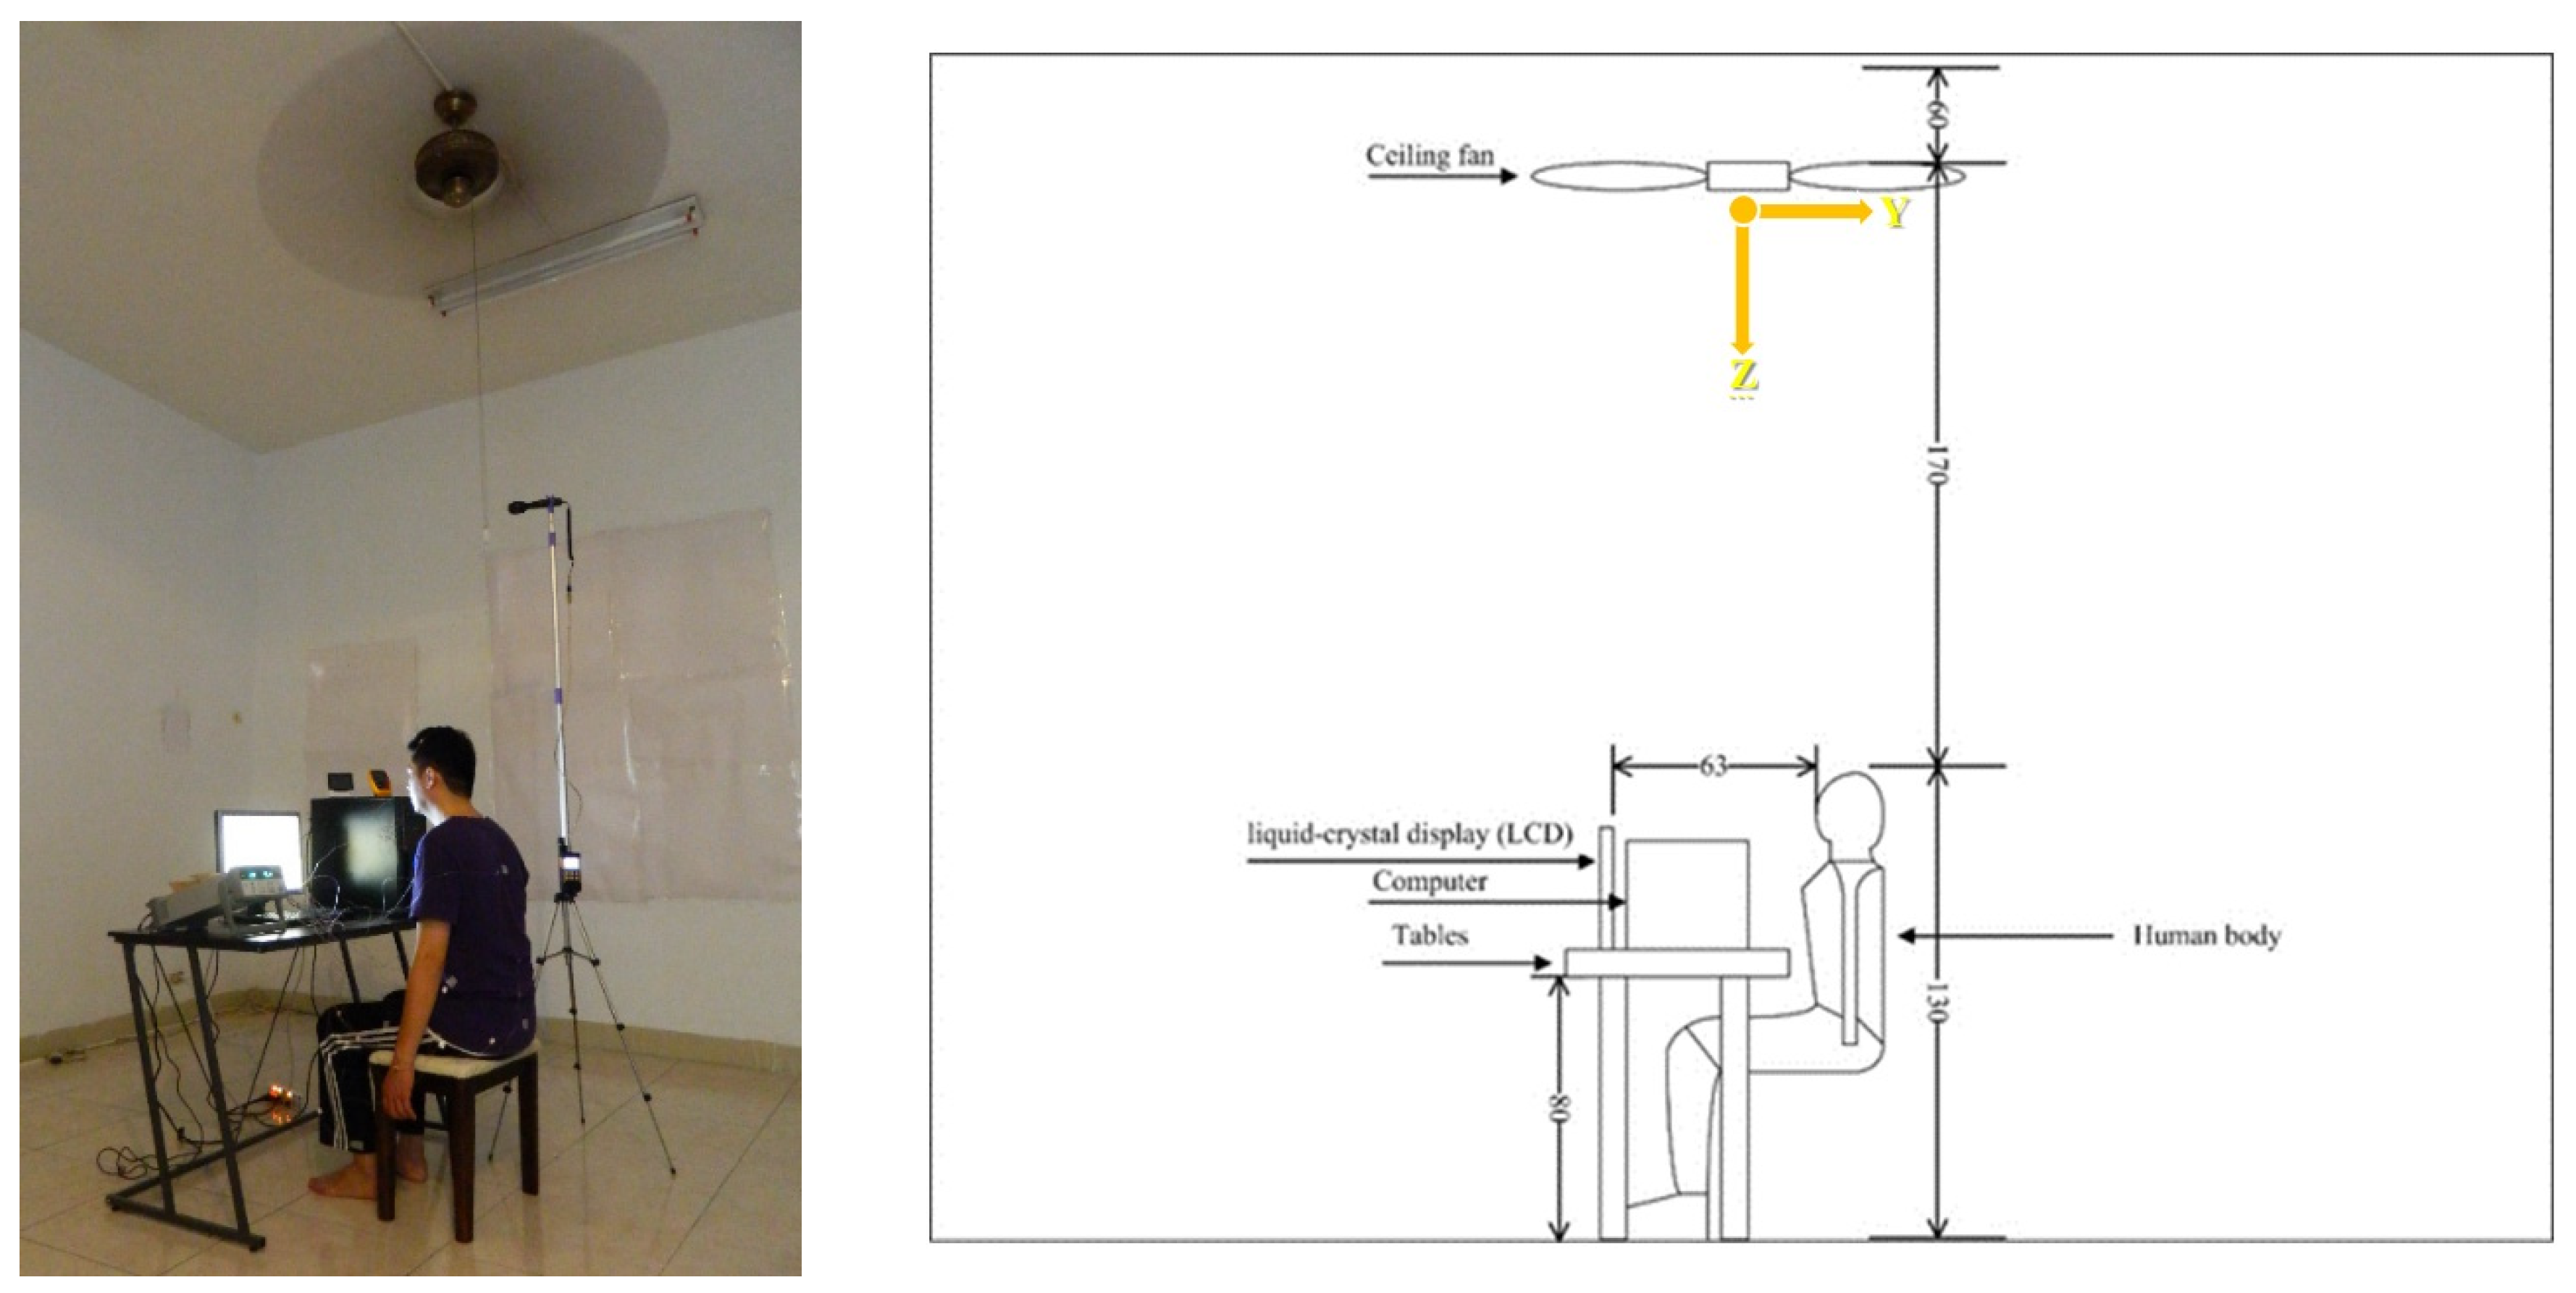 Sustainability Free Full Text Improvement Of Human Thermal Comfort By Optimizing The Airflow Induced By A Ceiling Fan Html